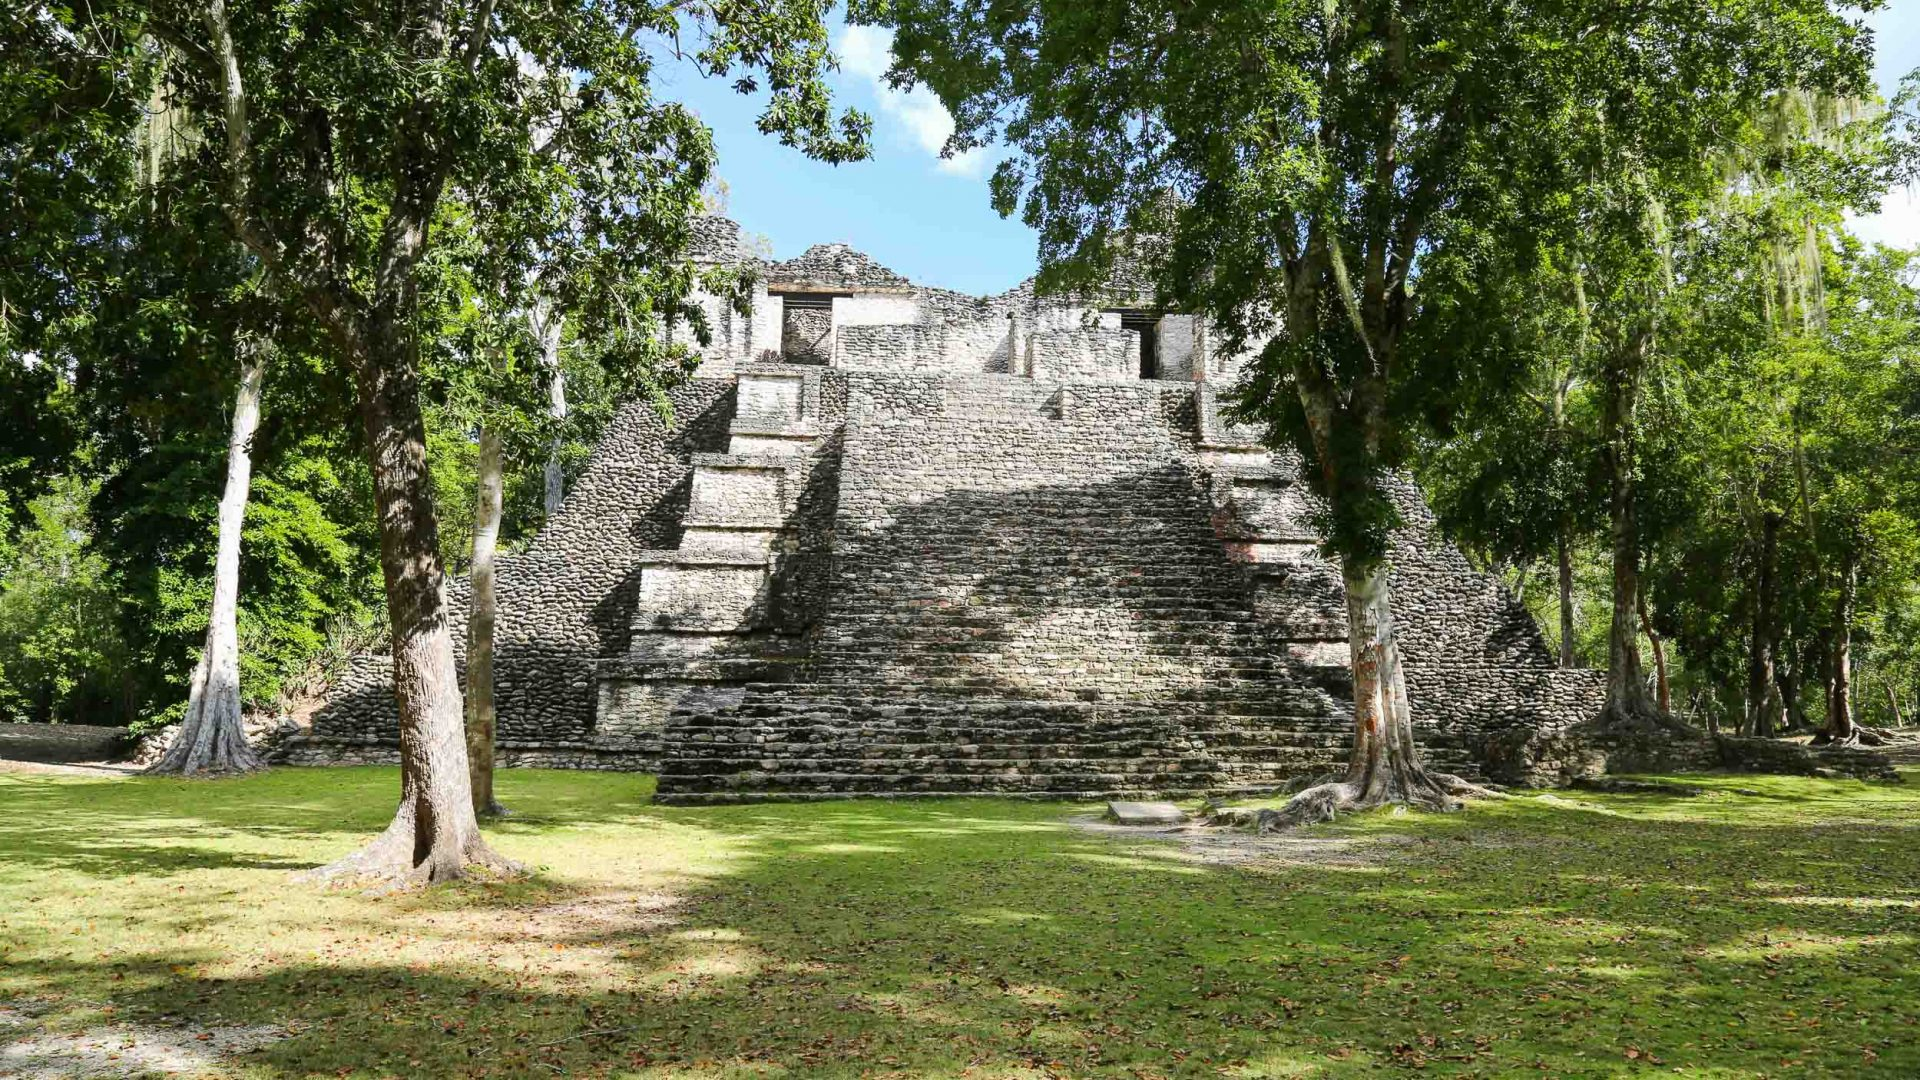 The ancient ruins of Dzibanche in Mexico's Yucatán Peninsula.